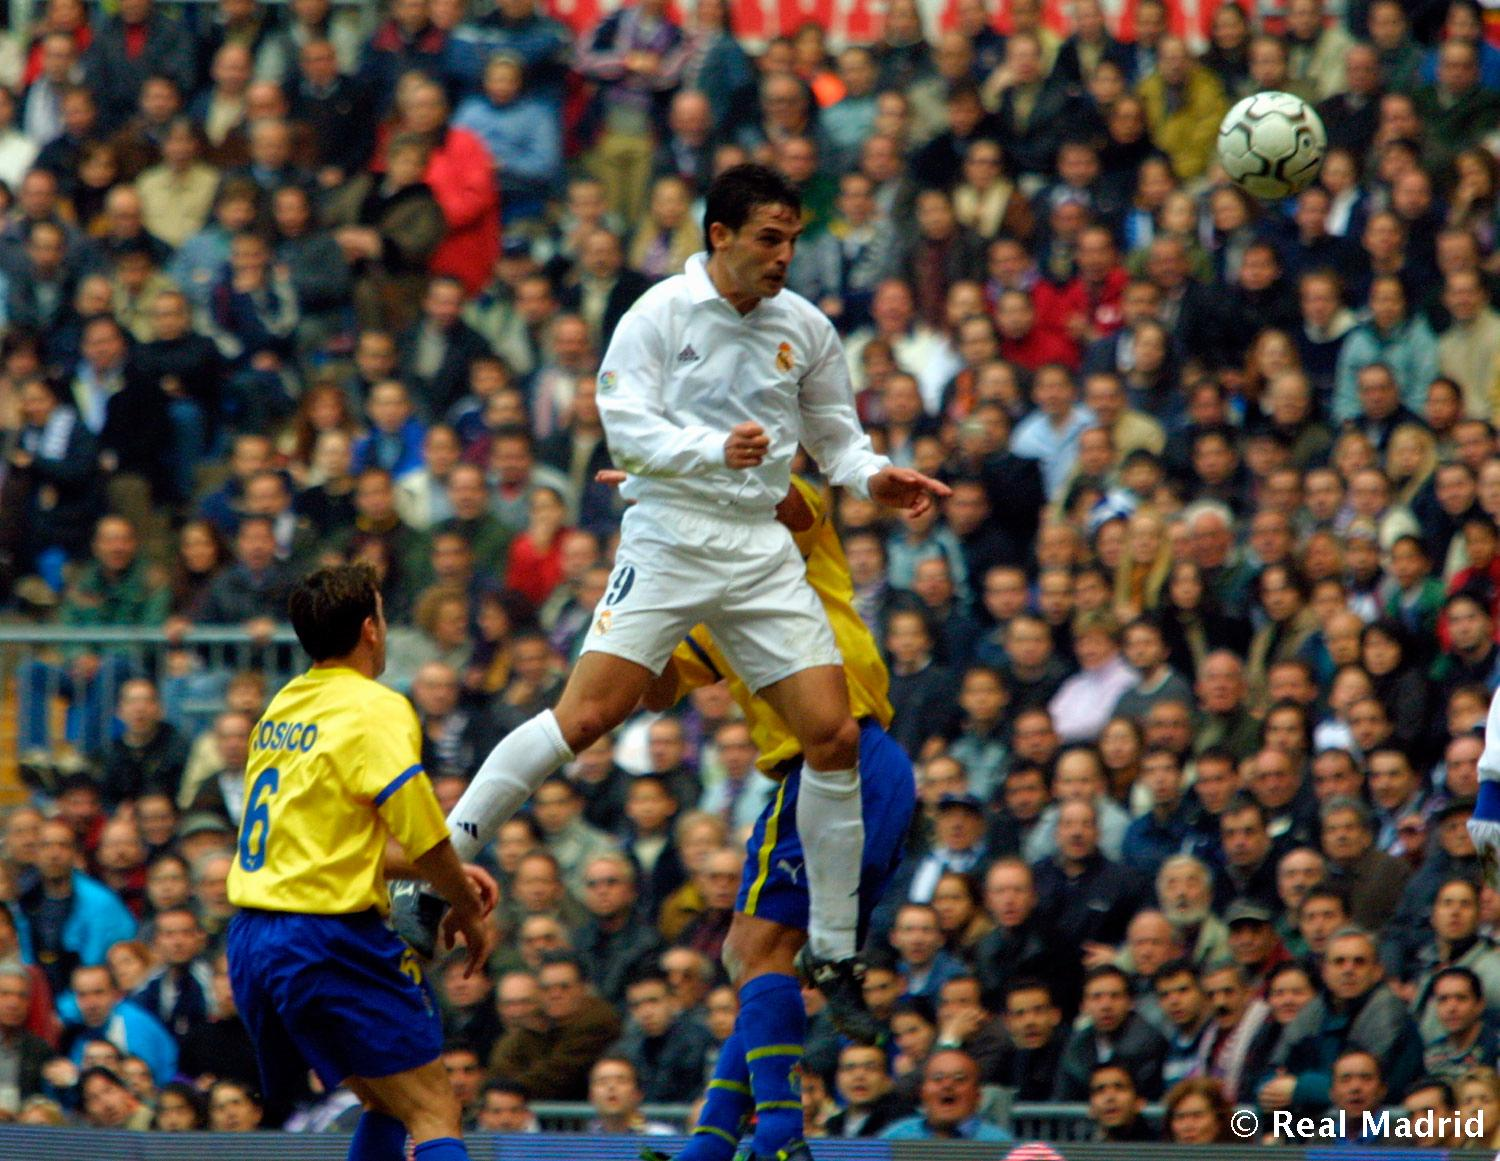 Real Madrid - Morientes 1 - 03-04-2015